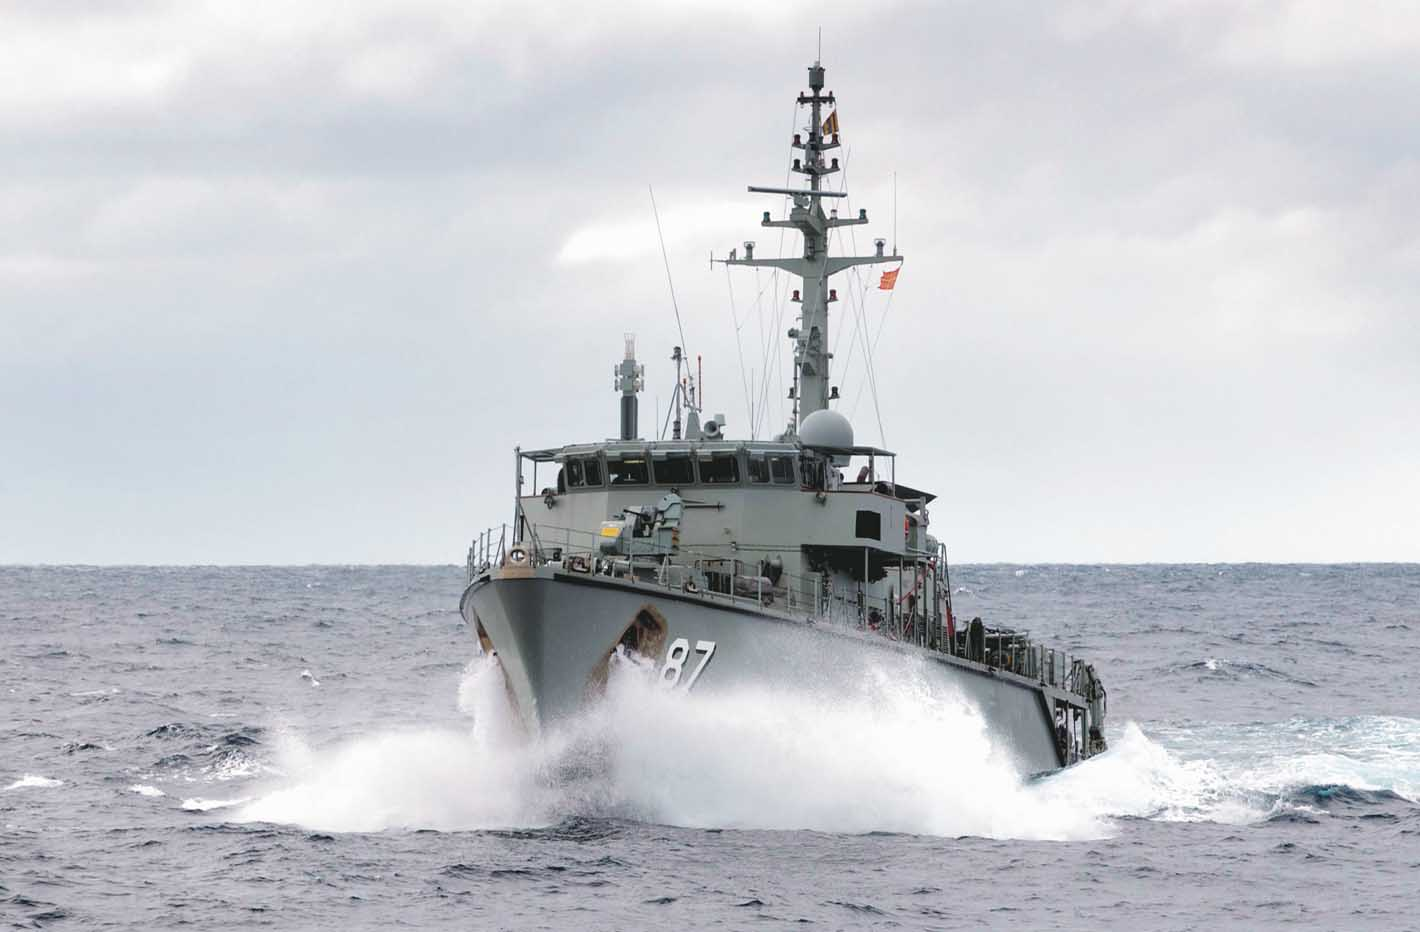 Pictured: The Australian mine-hunter HMAS Yarra, final unit of the six-ship Huon Class. Photo: Royal Australian Navy.